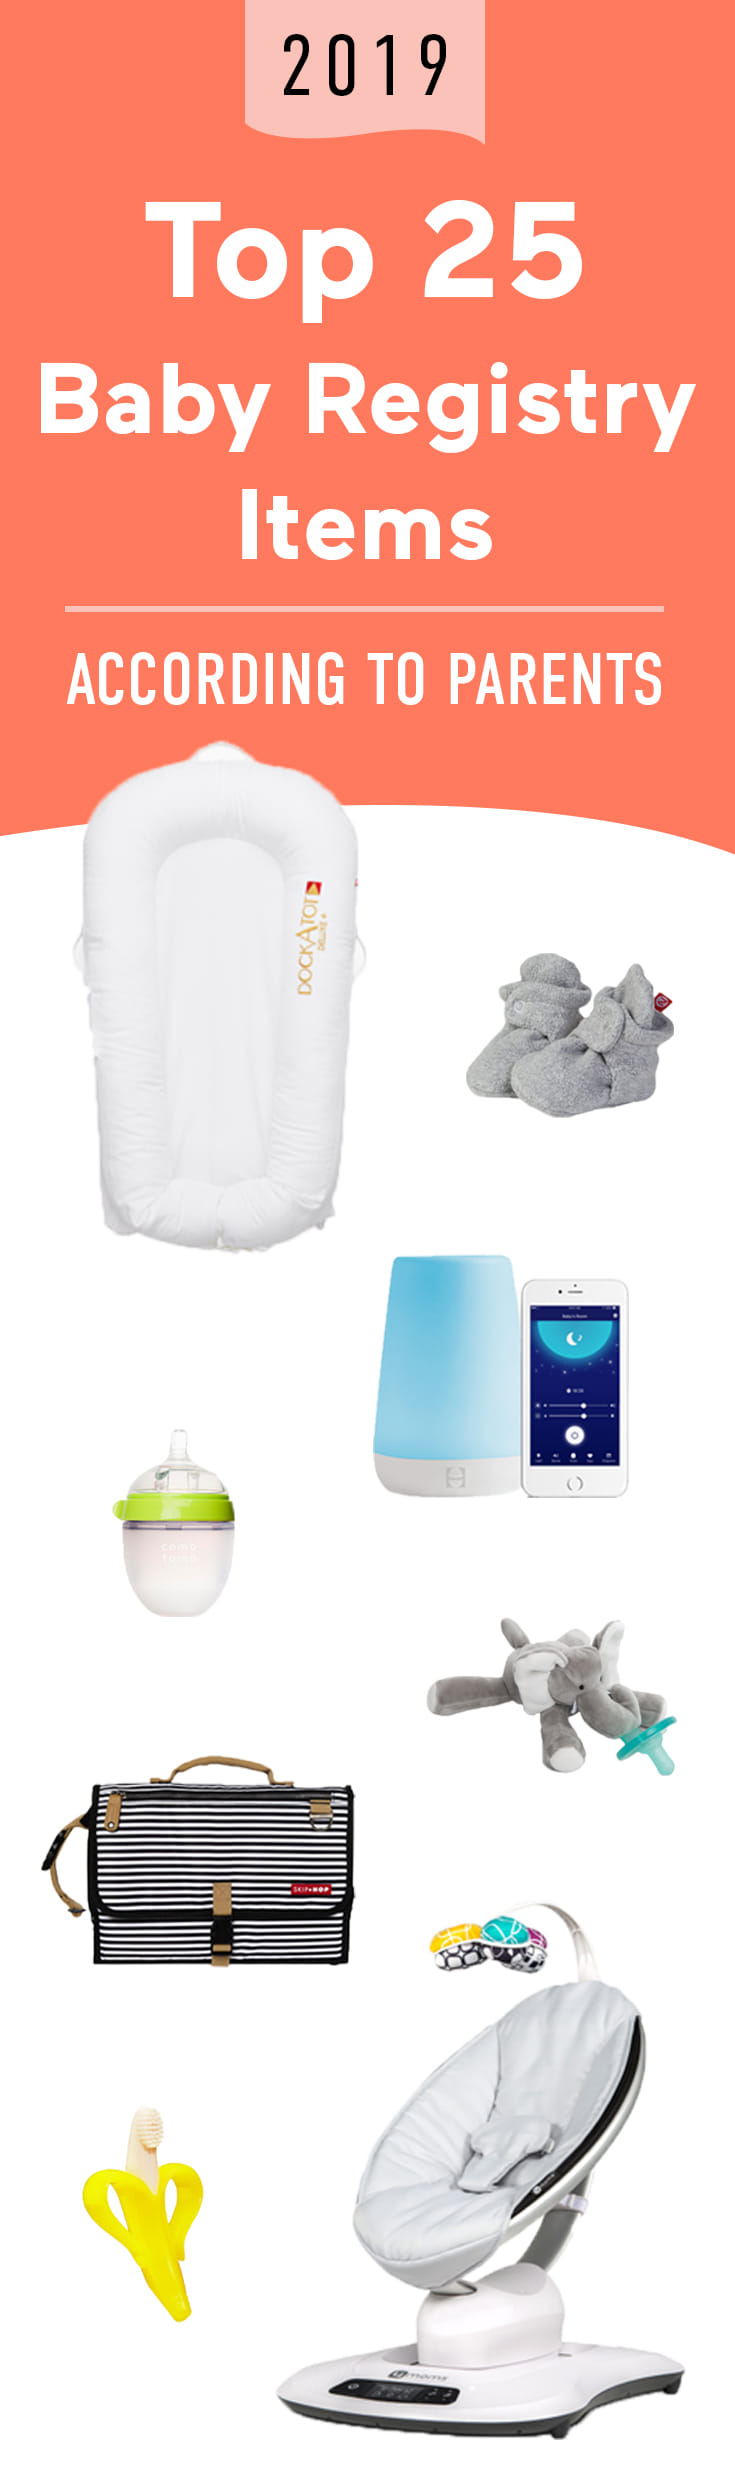 Cut through the noise: These are thousands of parents' must-haves, all in one handy list.